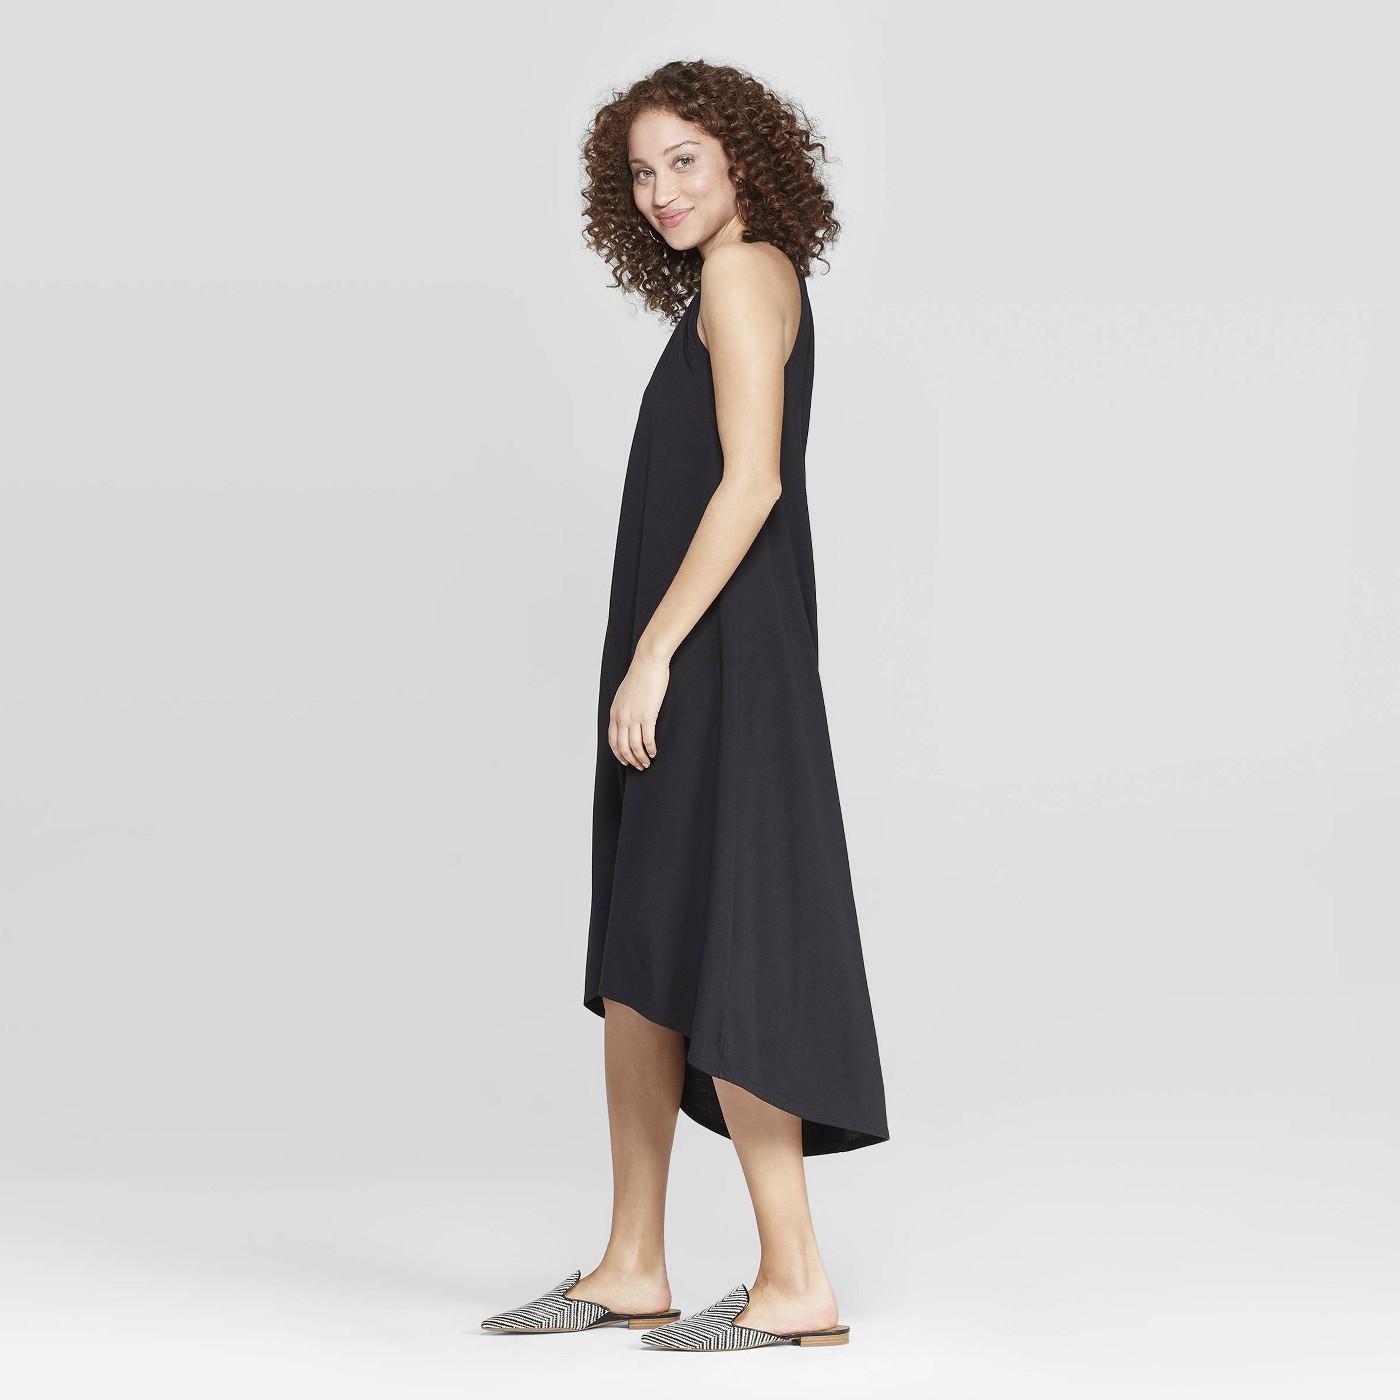 Cutest Dresses - A New Day Women's Relaxed Fit Sleeveless Crewneck Maxi Dress